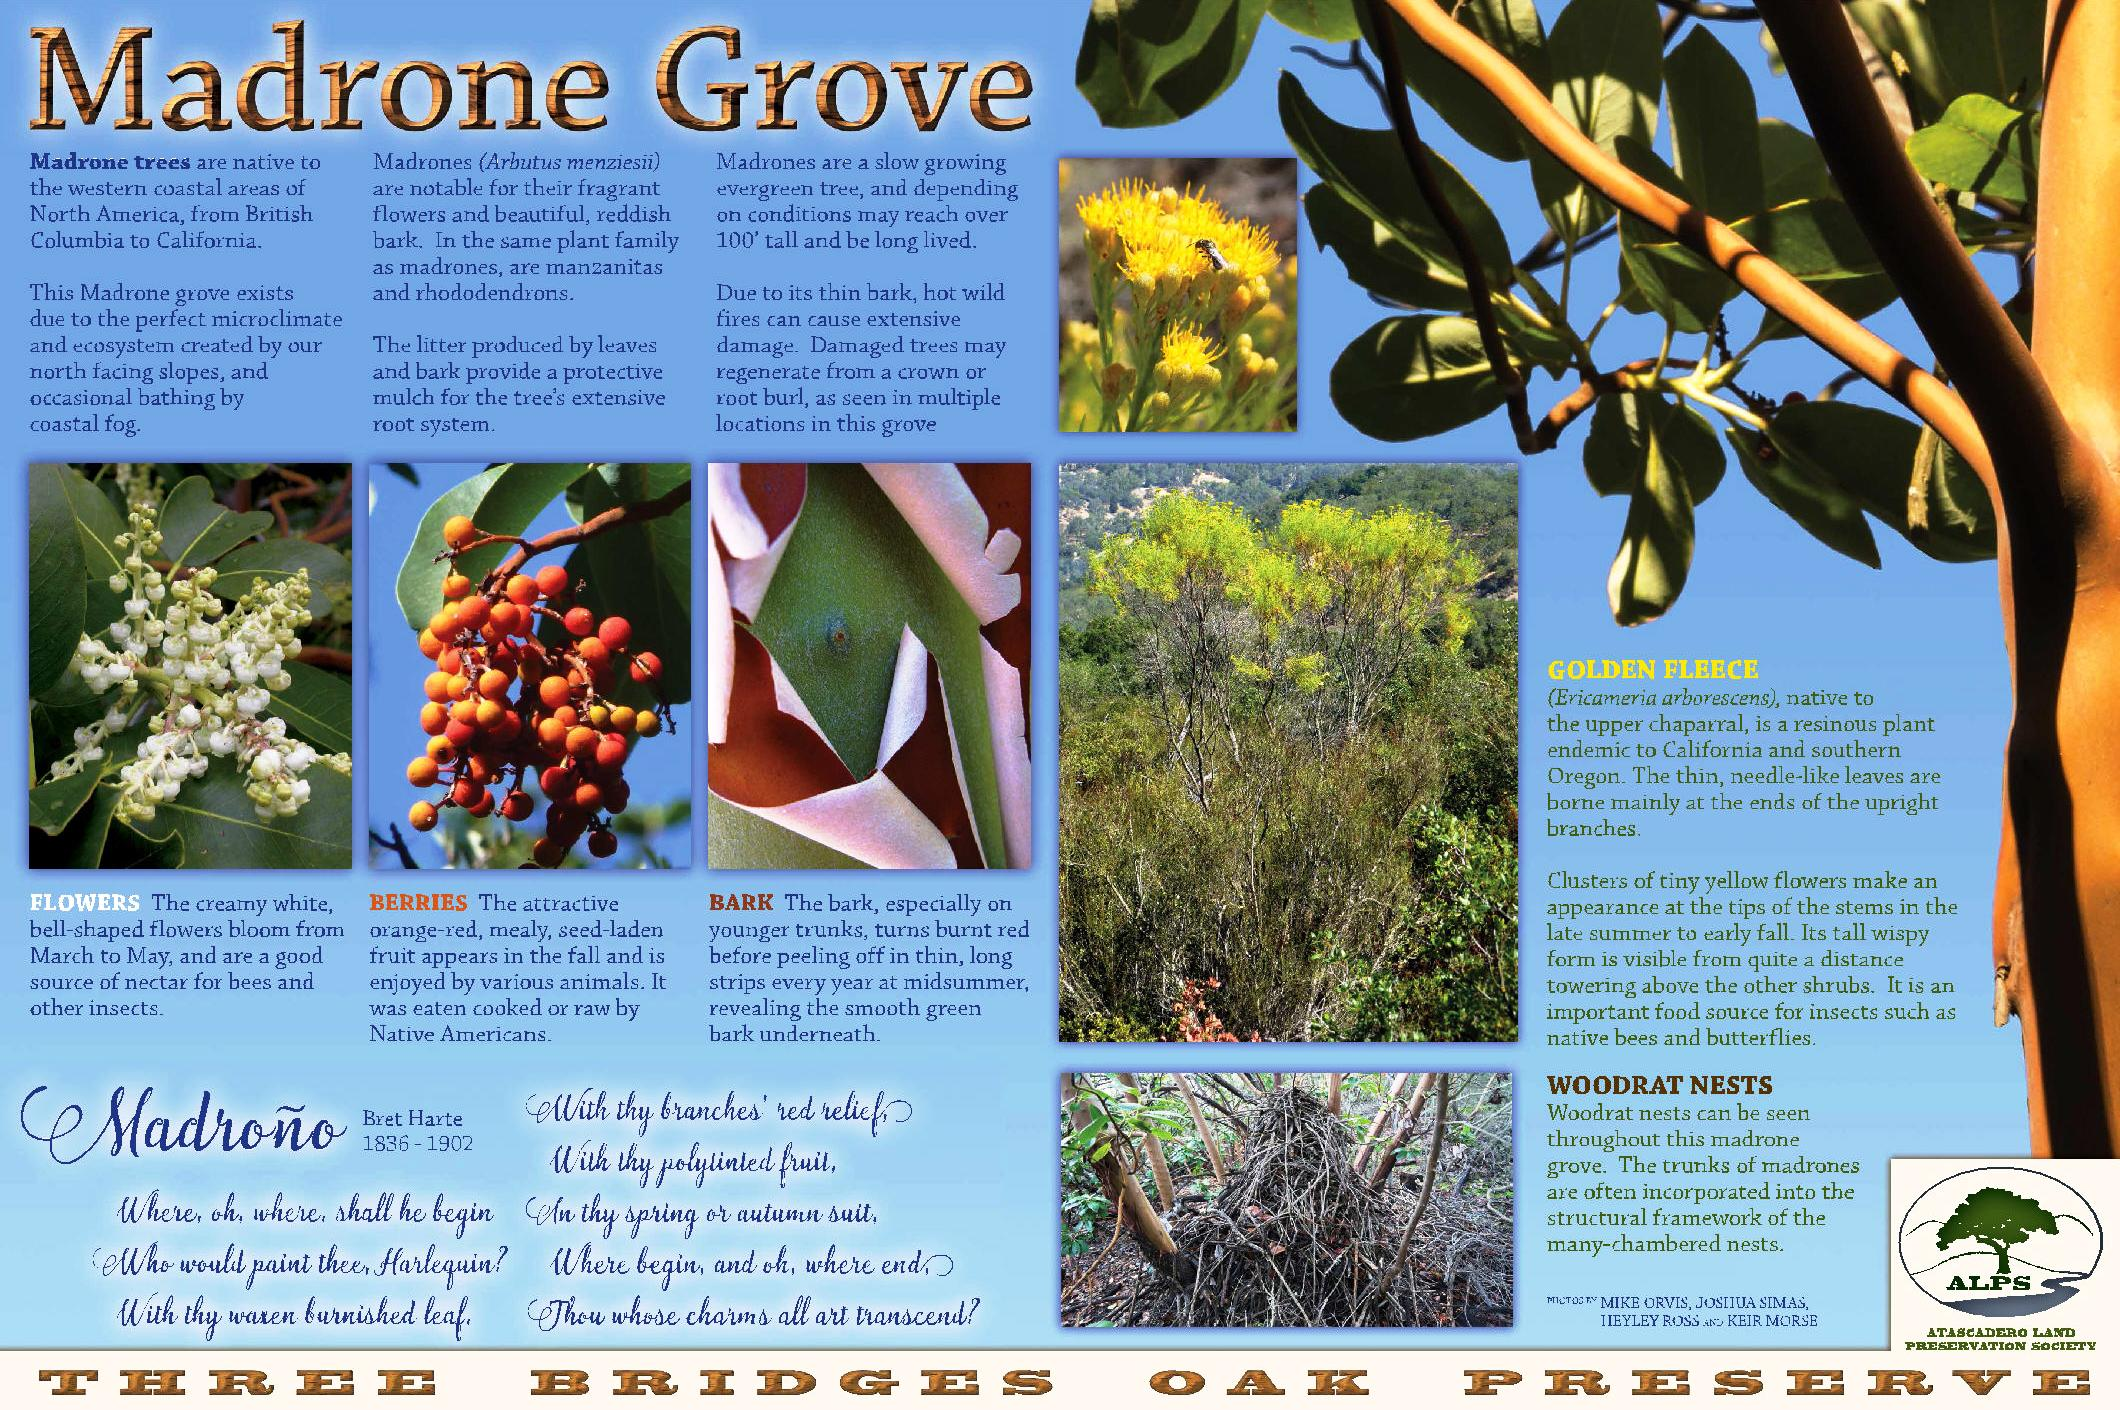 Madrone Grove - Madrone Trail